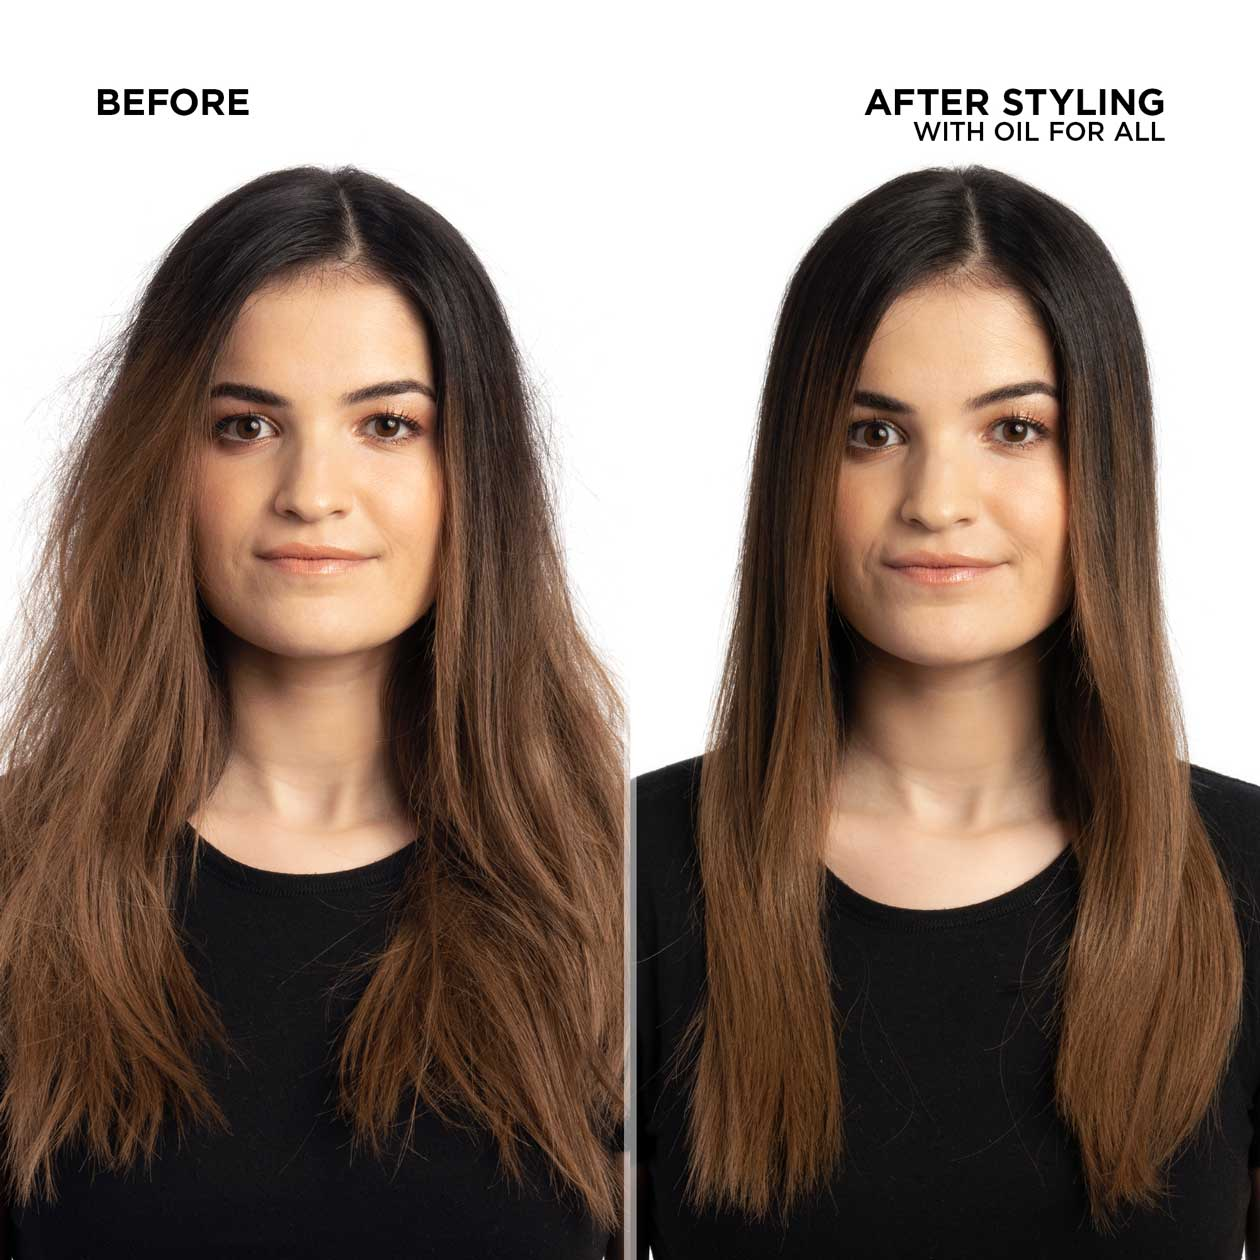 Redken-2020-Oil-for-All-EComm-Before-After-Natalie-1-2000x2000